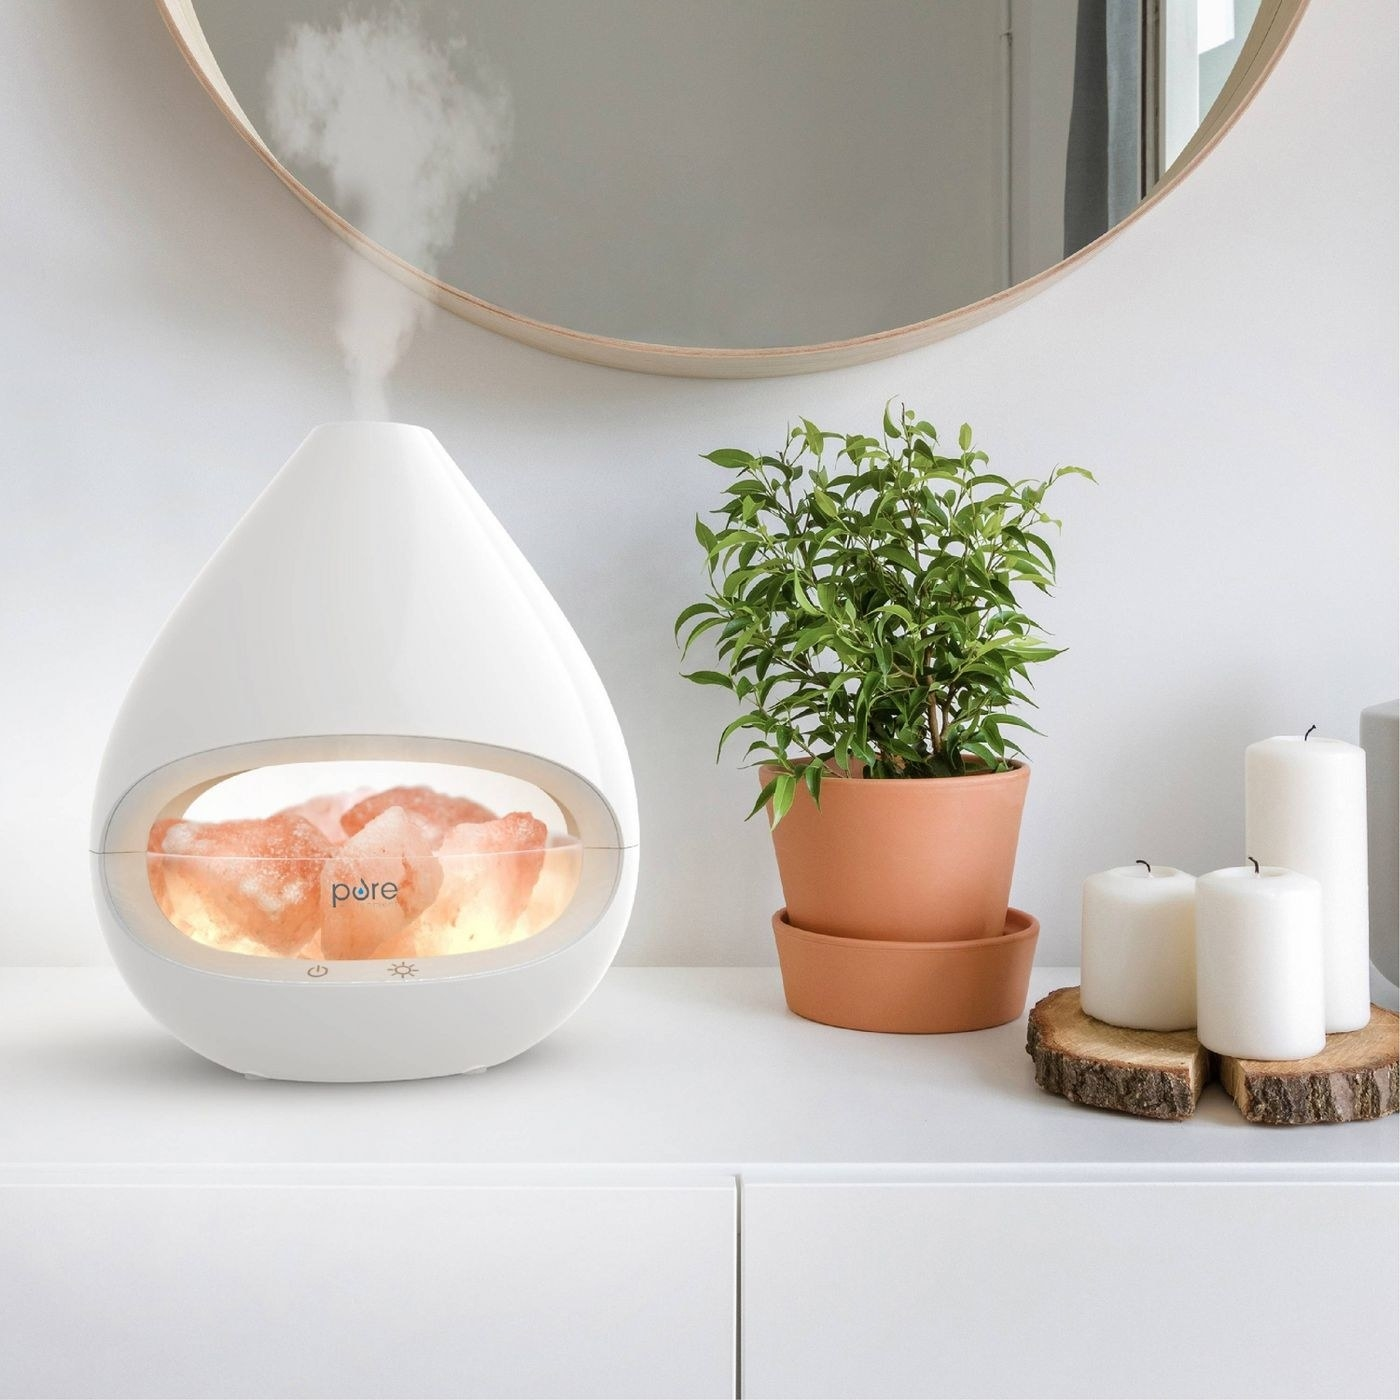 A white Himalayan salt lamp oil diffuser on a table